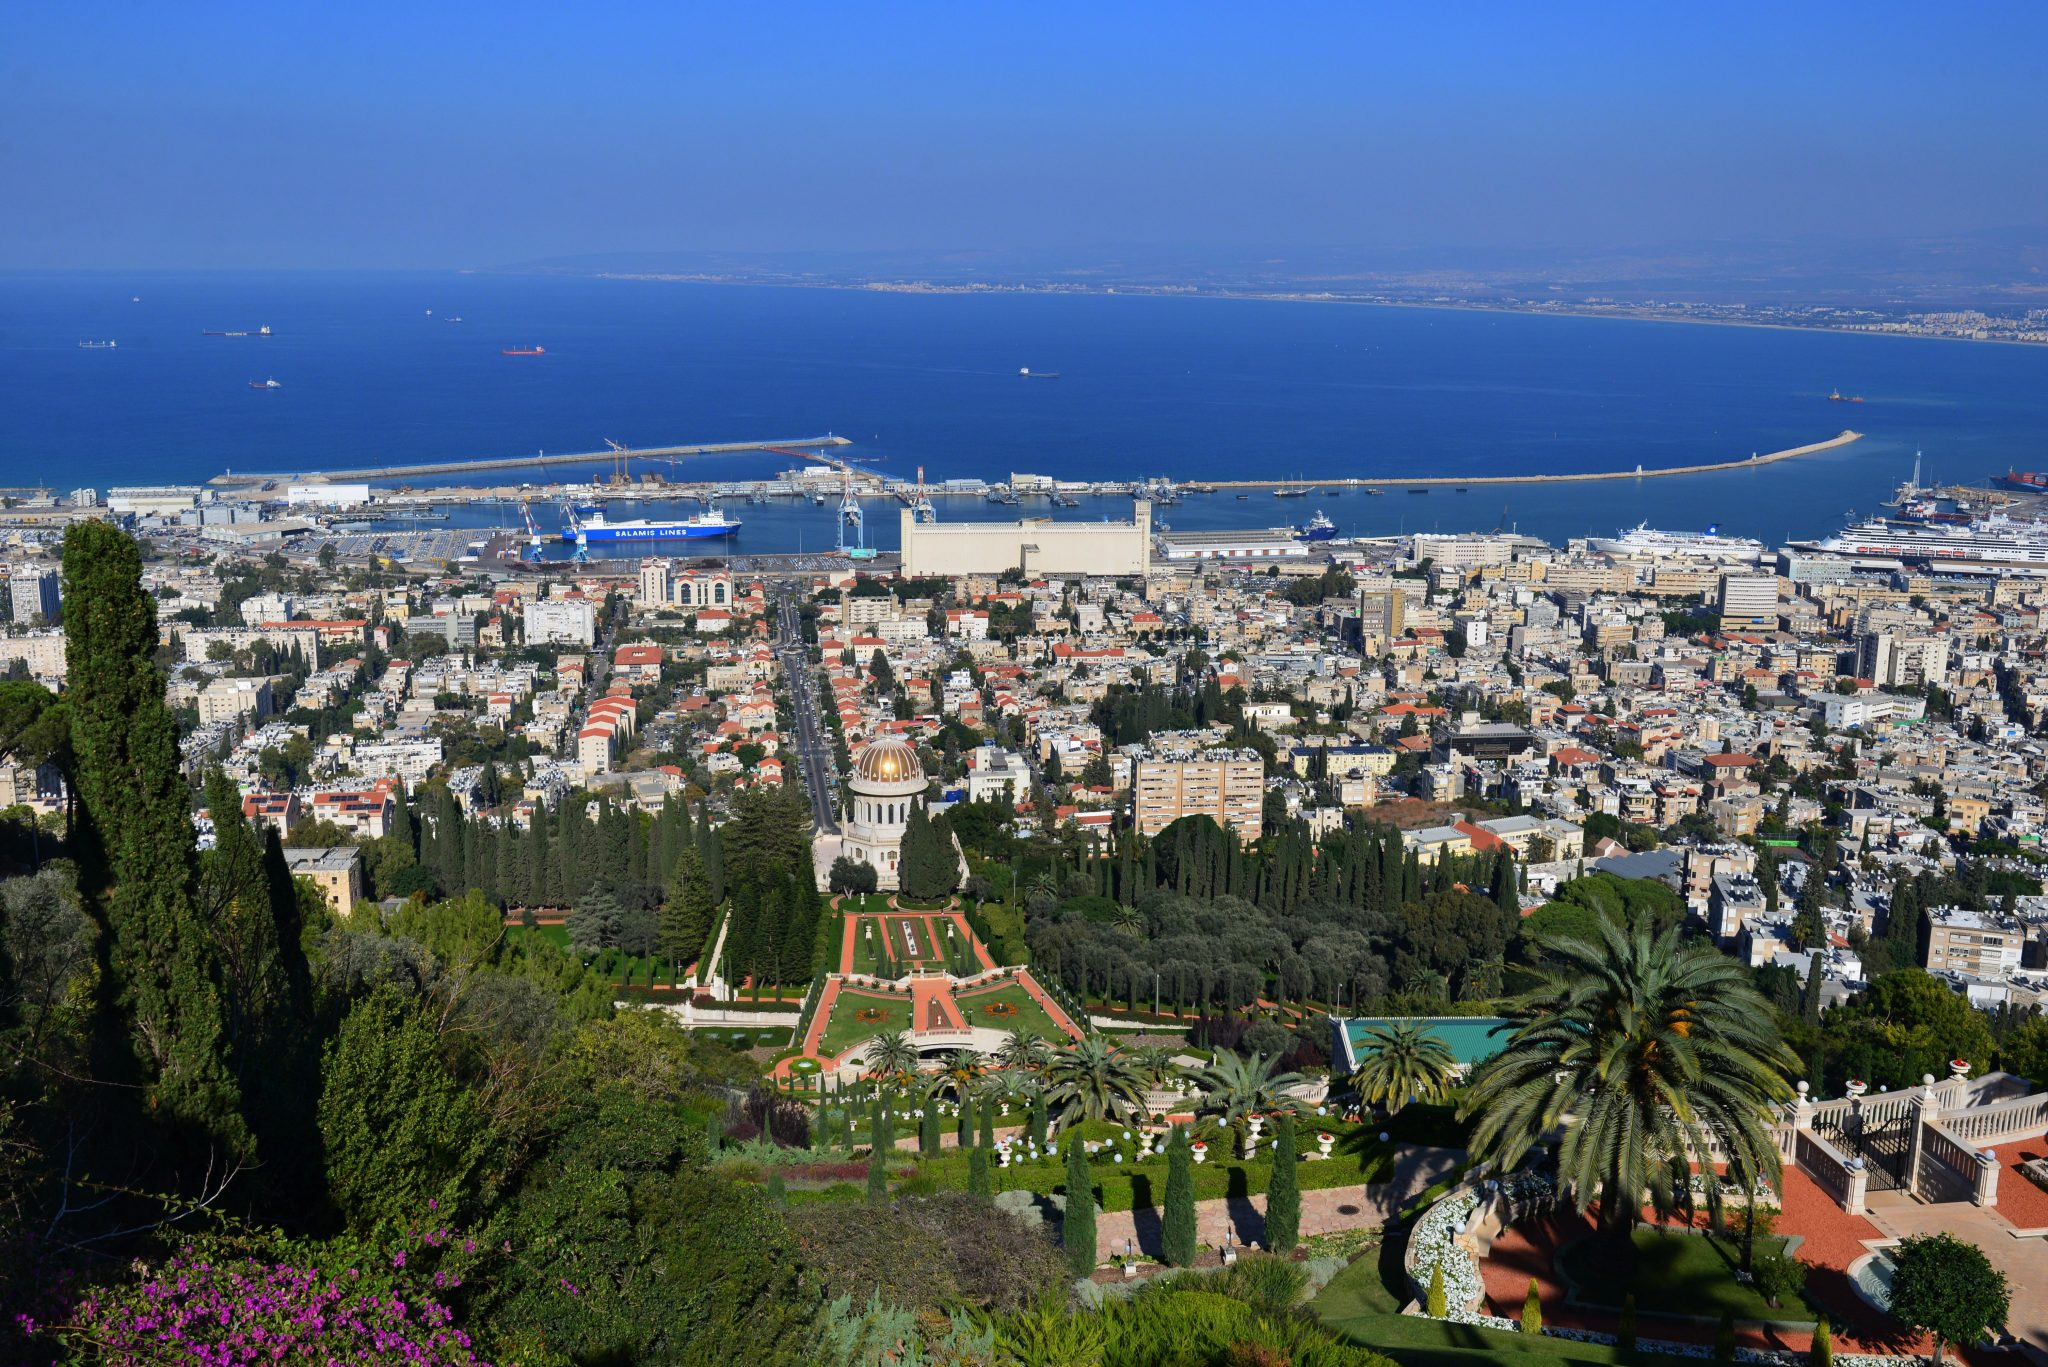 View of Haifa from the Baha'i Gardens